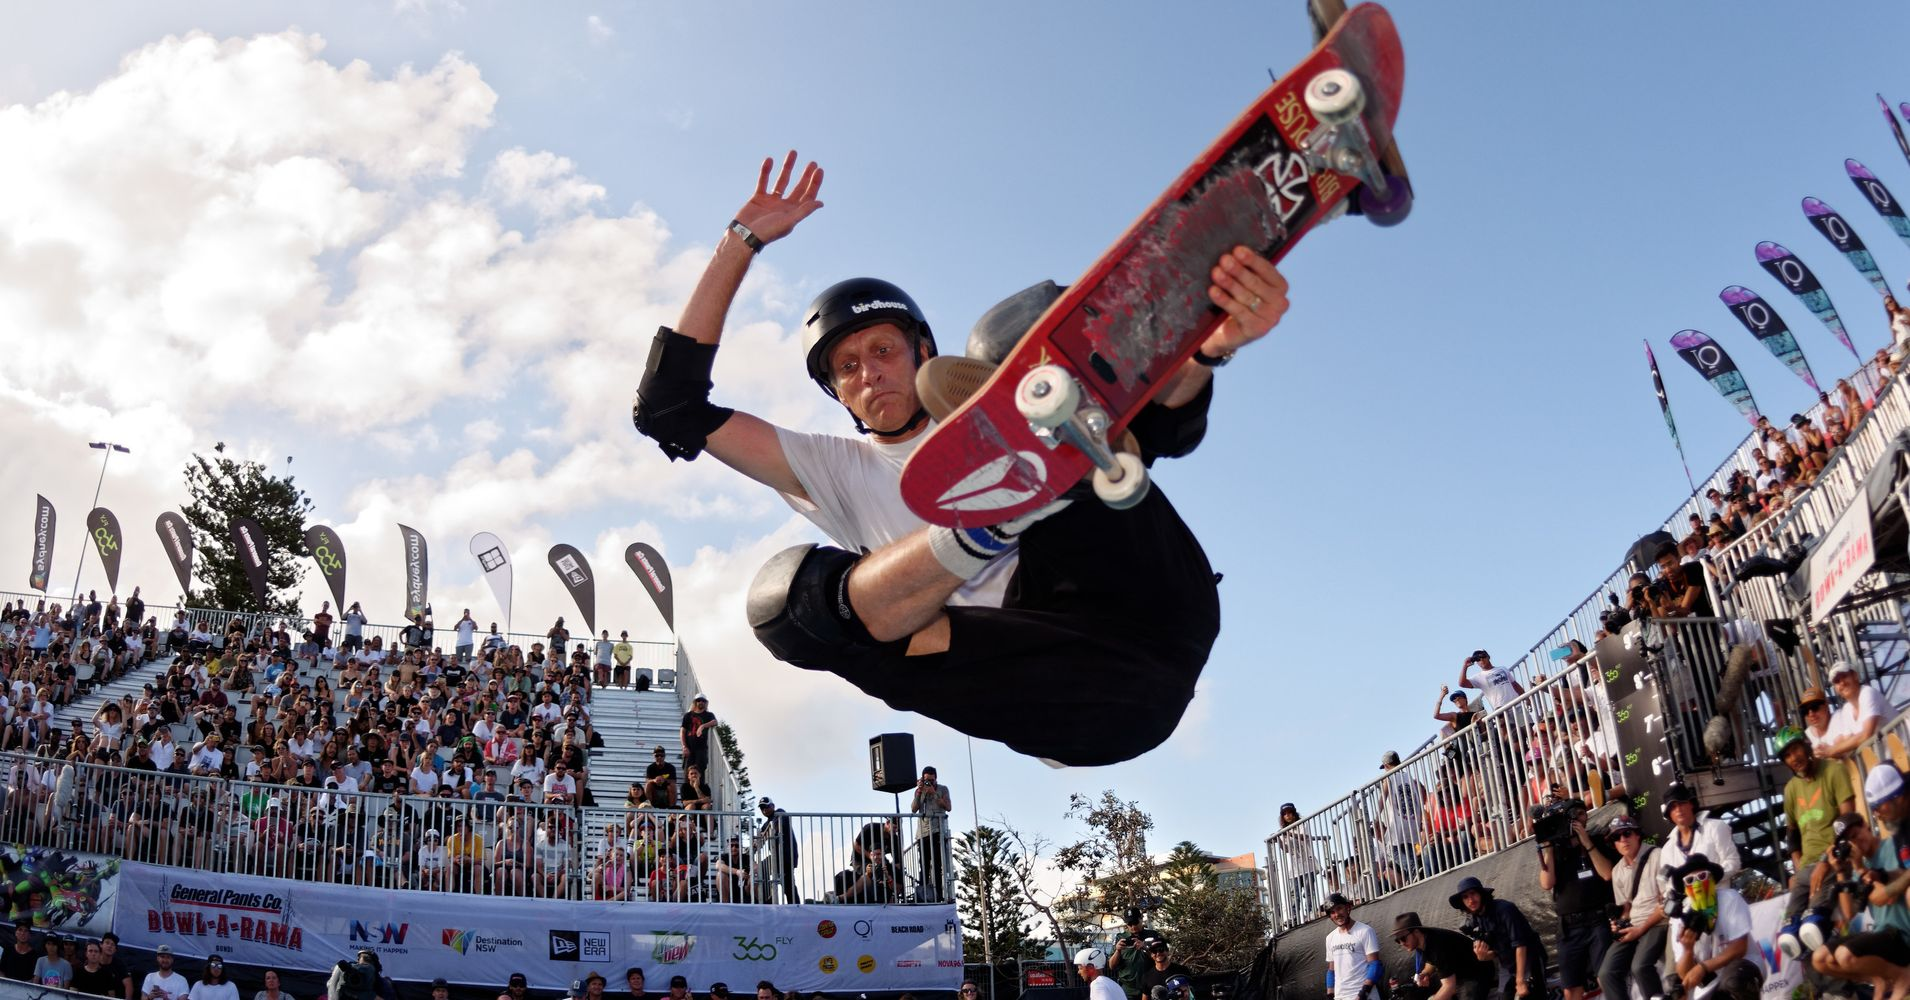 Skateboarding And Surfing Are Very Close To Becoming ...